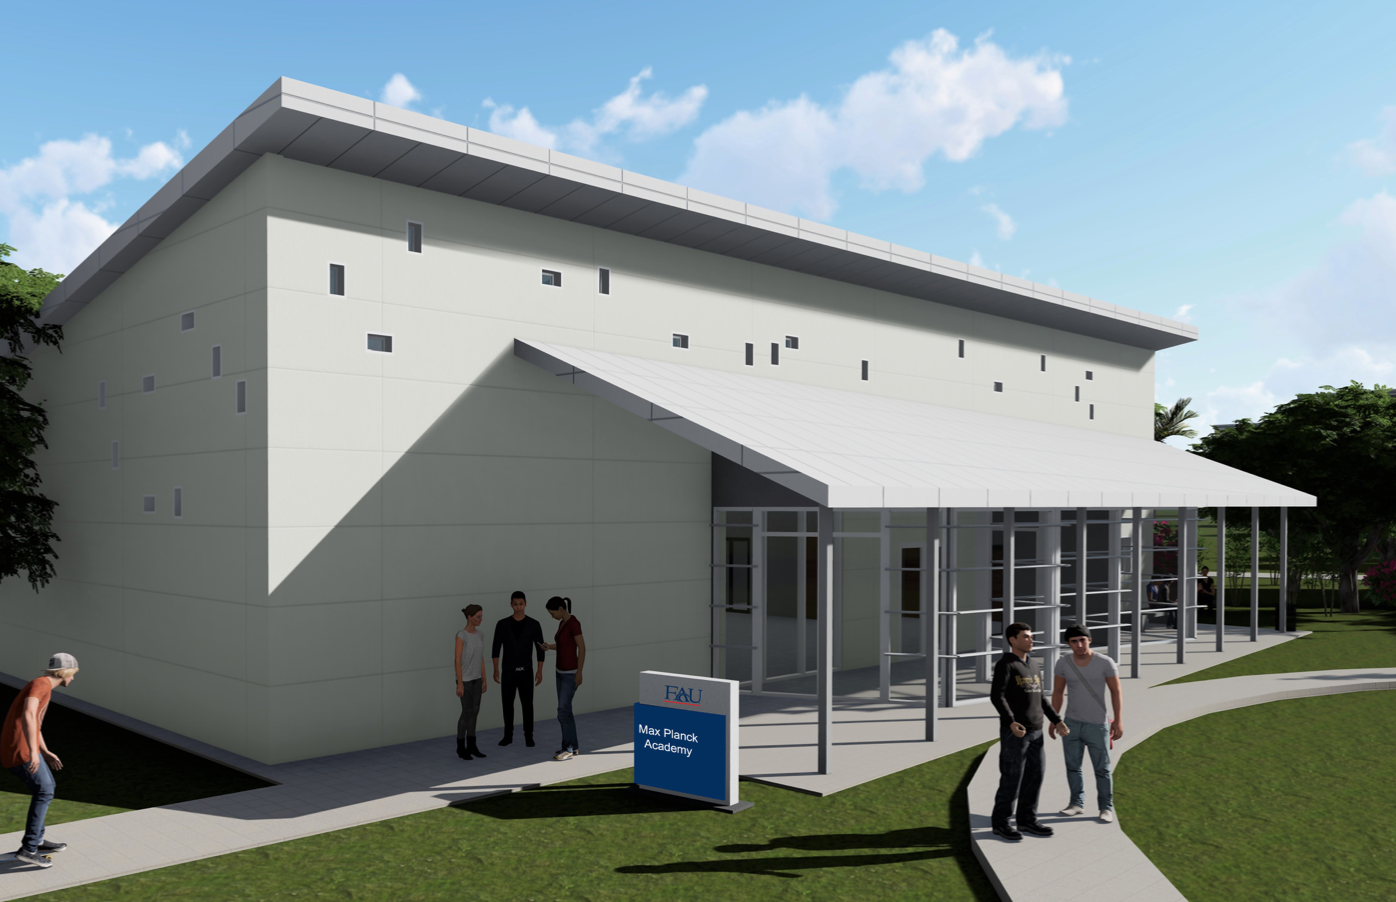 FAU has created 3-D models depicting what they expect the Max Planck Academy building to look like. Photo courtesy of FAU